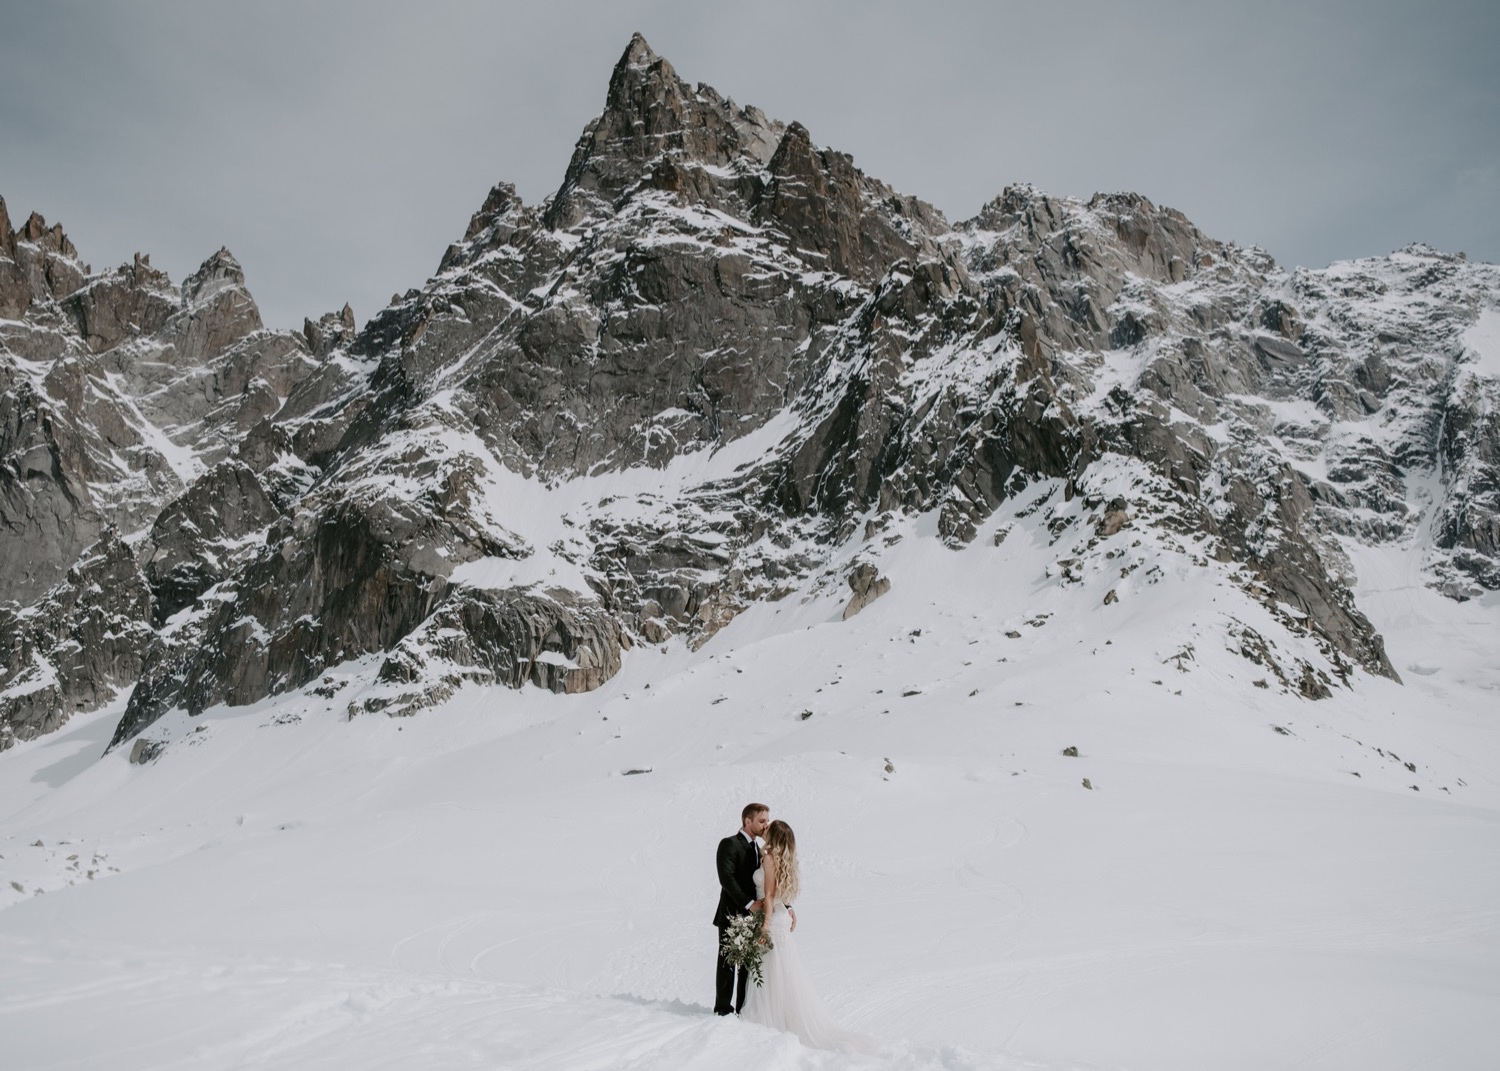 Chamonix-France-Elopement-Destination-Elopement-Photographer-28.jpg